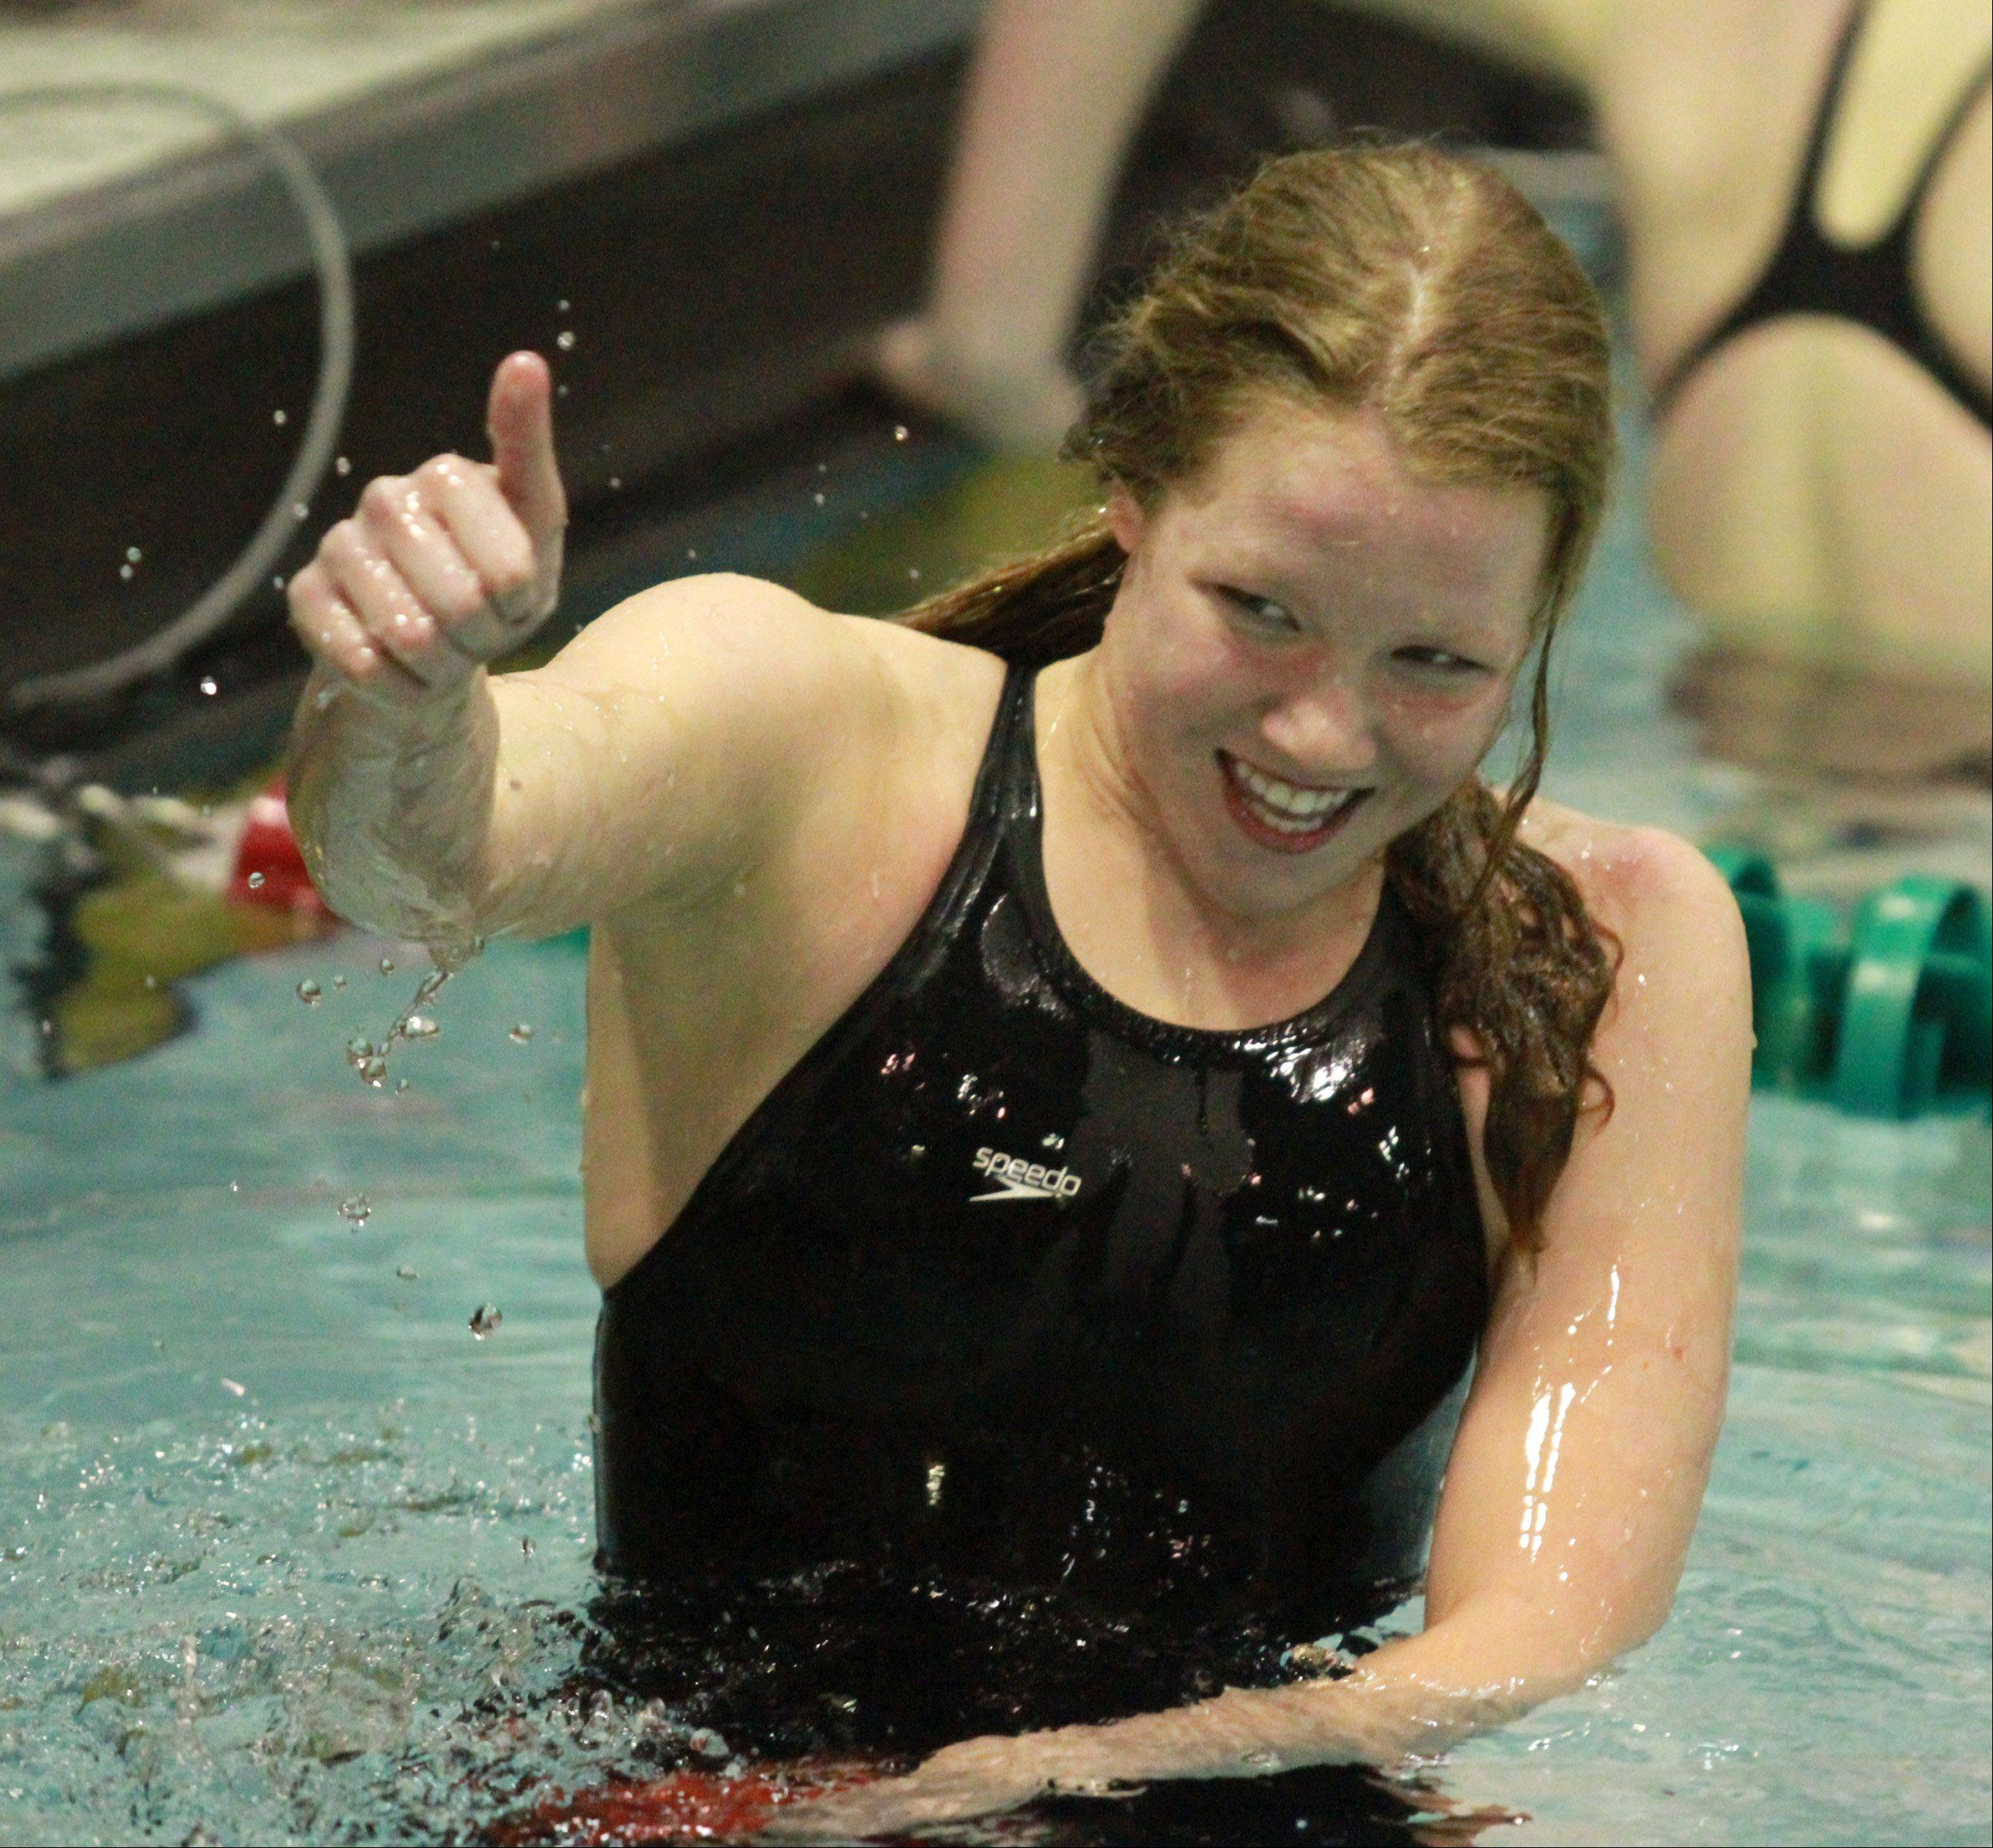 George LeClaire/gleclaire@dailyherald.comMundelein's Erin Falconer celebrates after placing second in the 100-yard freestyle at the girls swimming state finals on Saturday at New Trier.